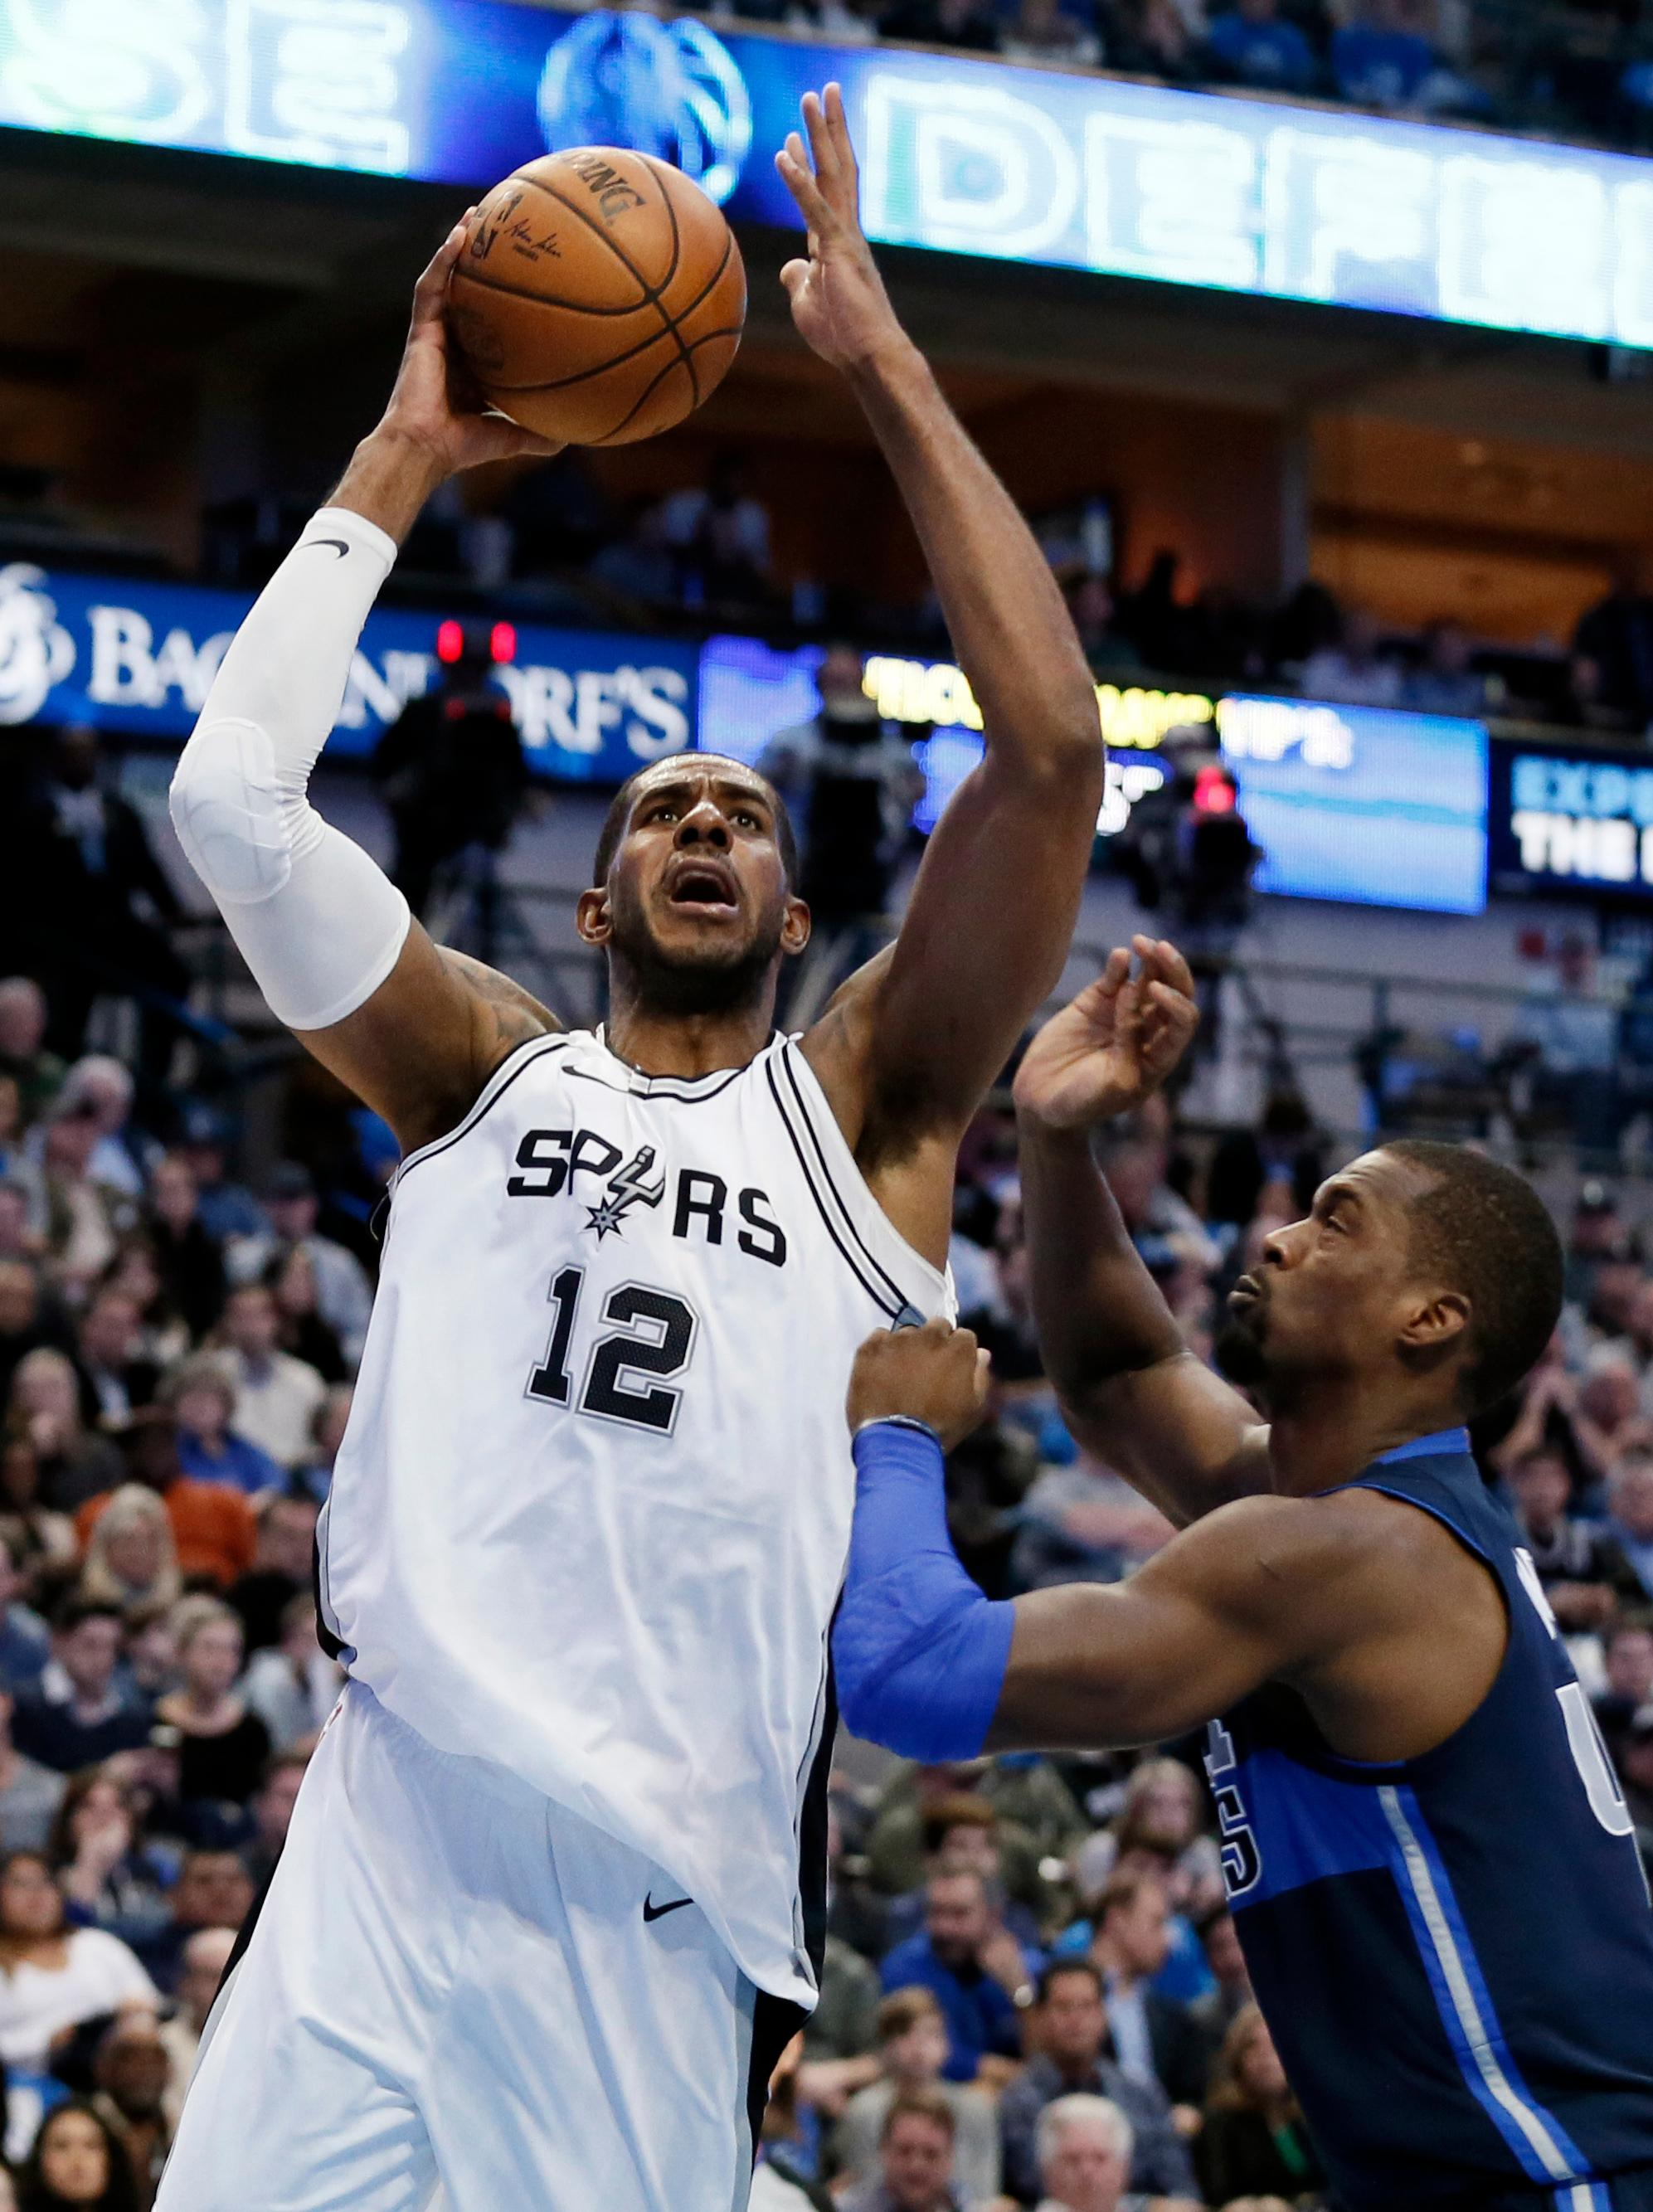 San Antonio Spurs forward LaMarcus Aldridge (12) goes up for a shot over Dallas Mavericks' Harrison Barnes (40) in the second half of an NBA basketball game, Tuesday, Dec. 12, 2017, in Dallas. The Mavericks won, 95-89. (AP Photo/Tony Gutierrez)